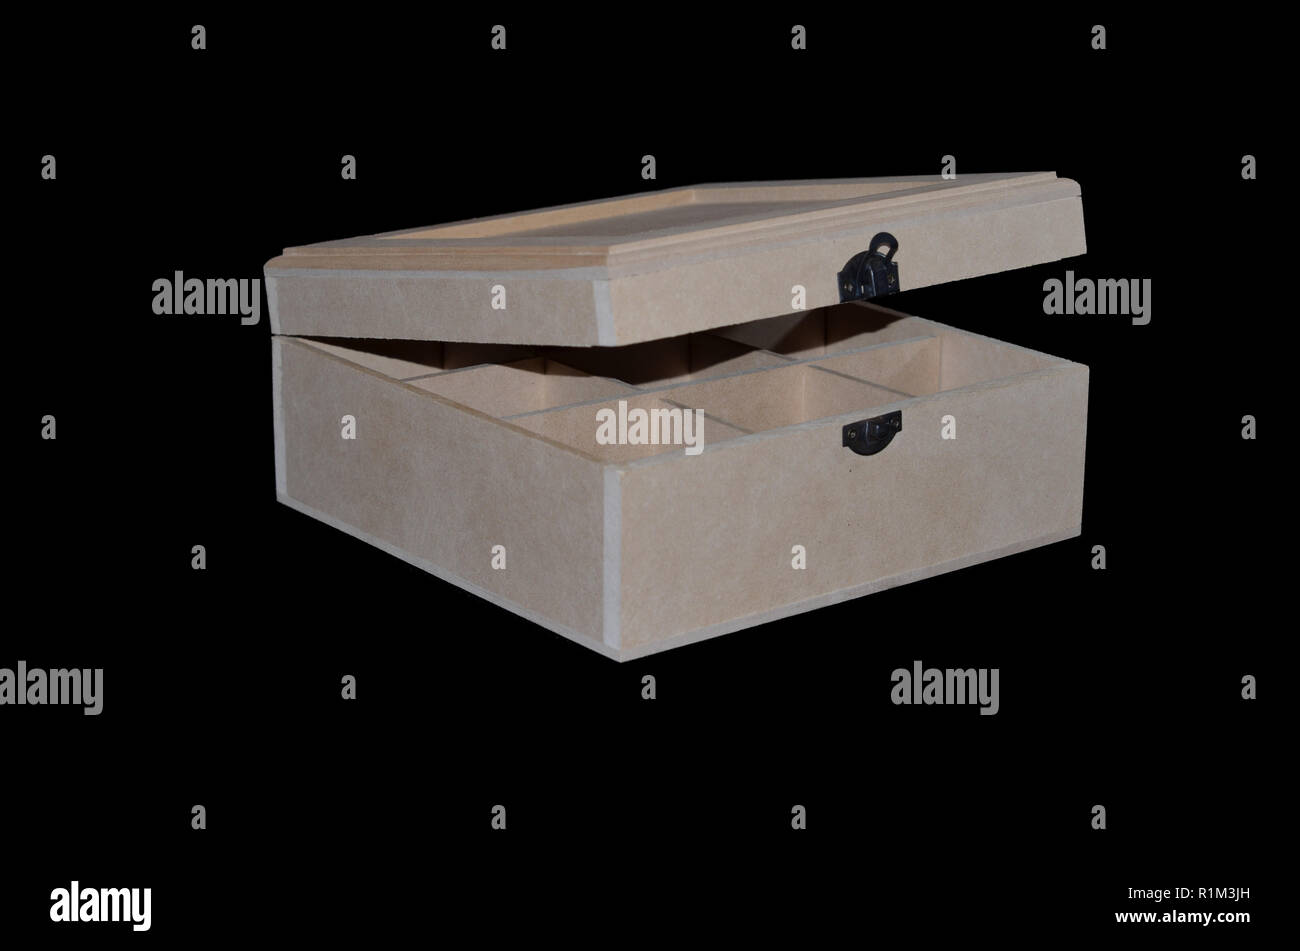 wooden box with spacers - Stock Image